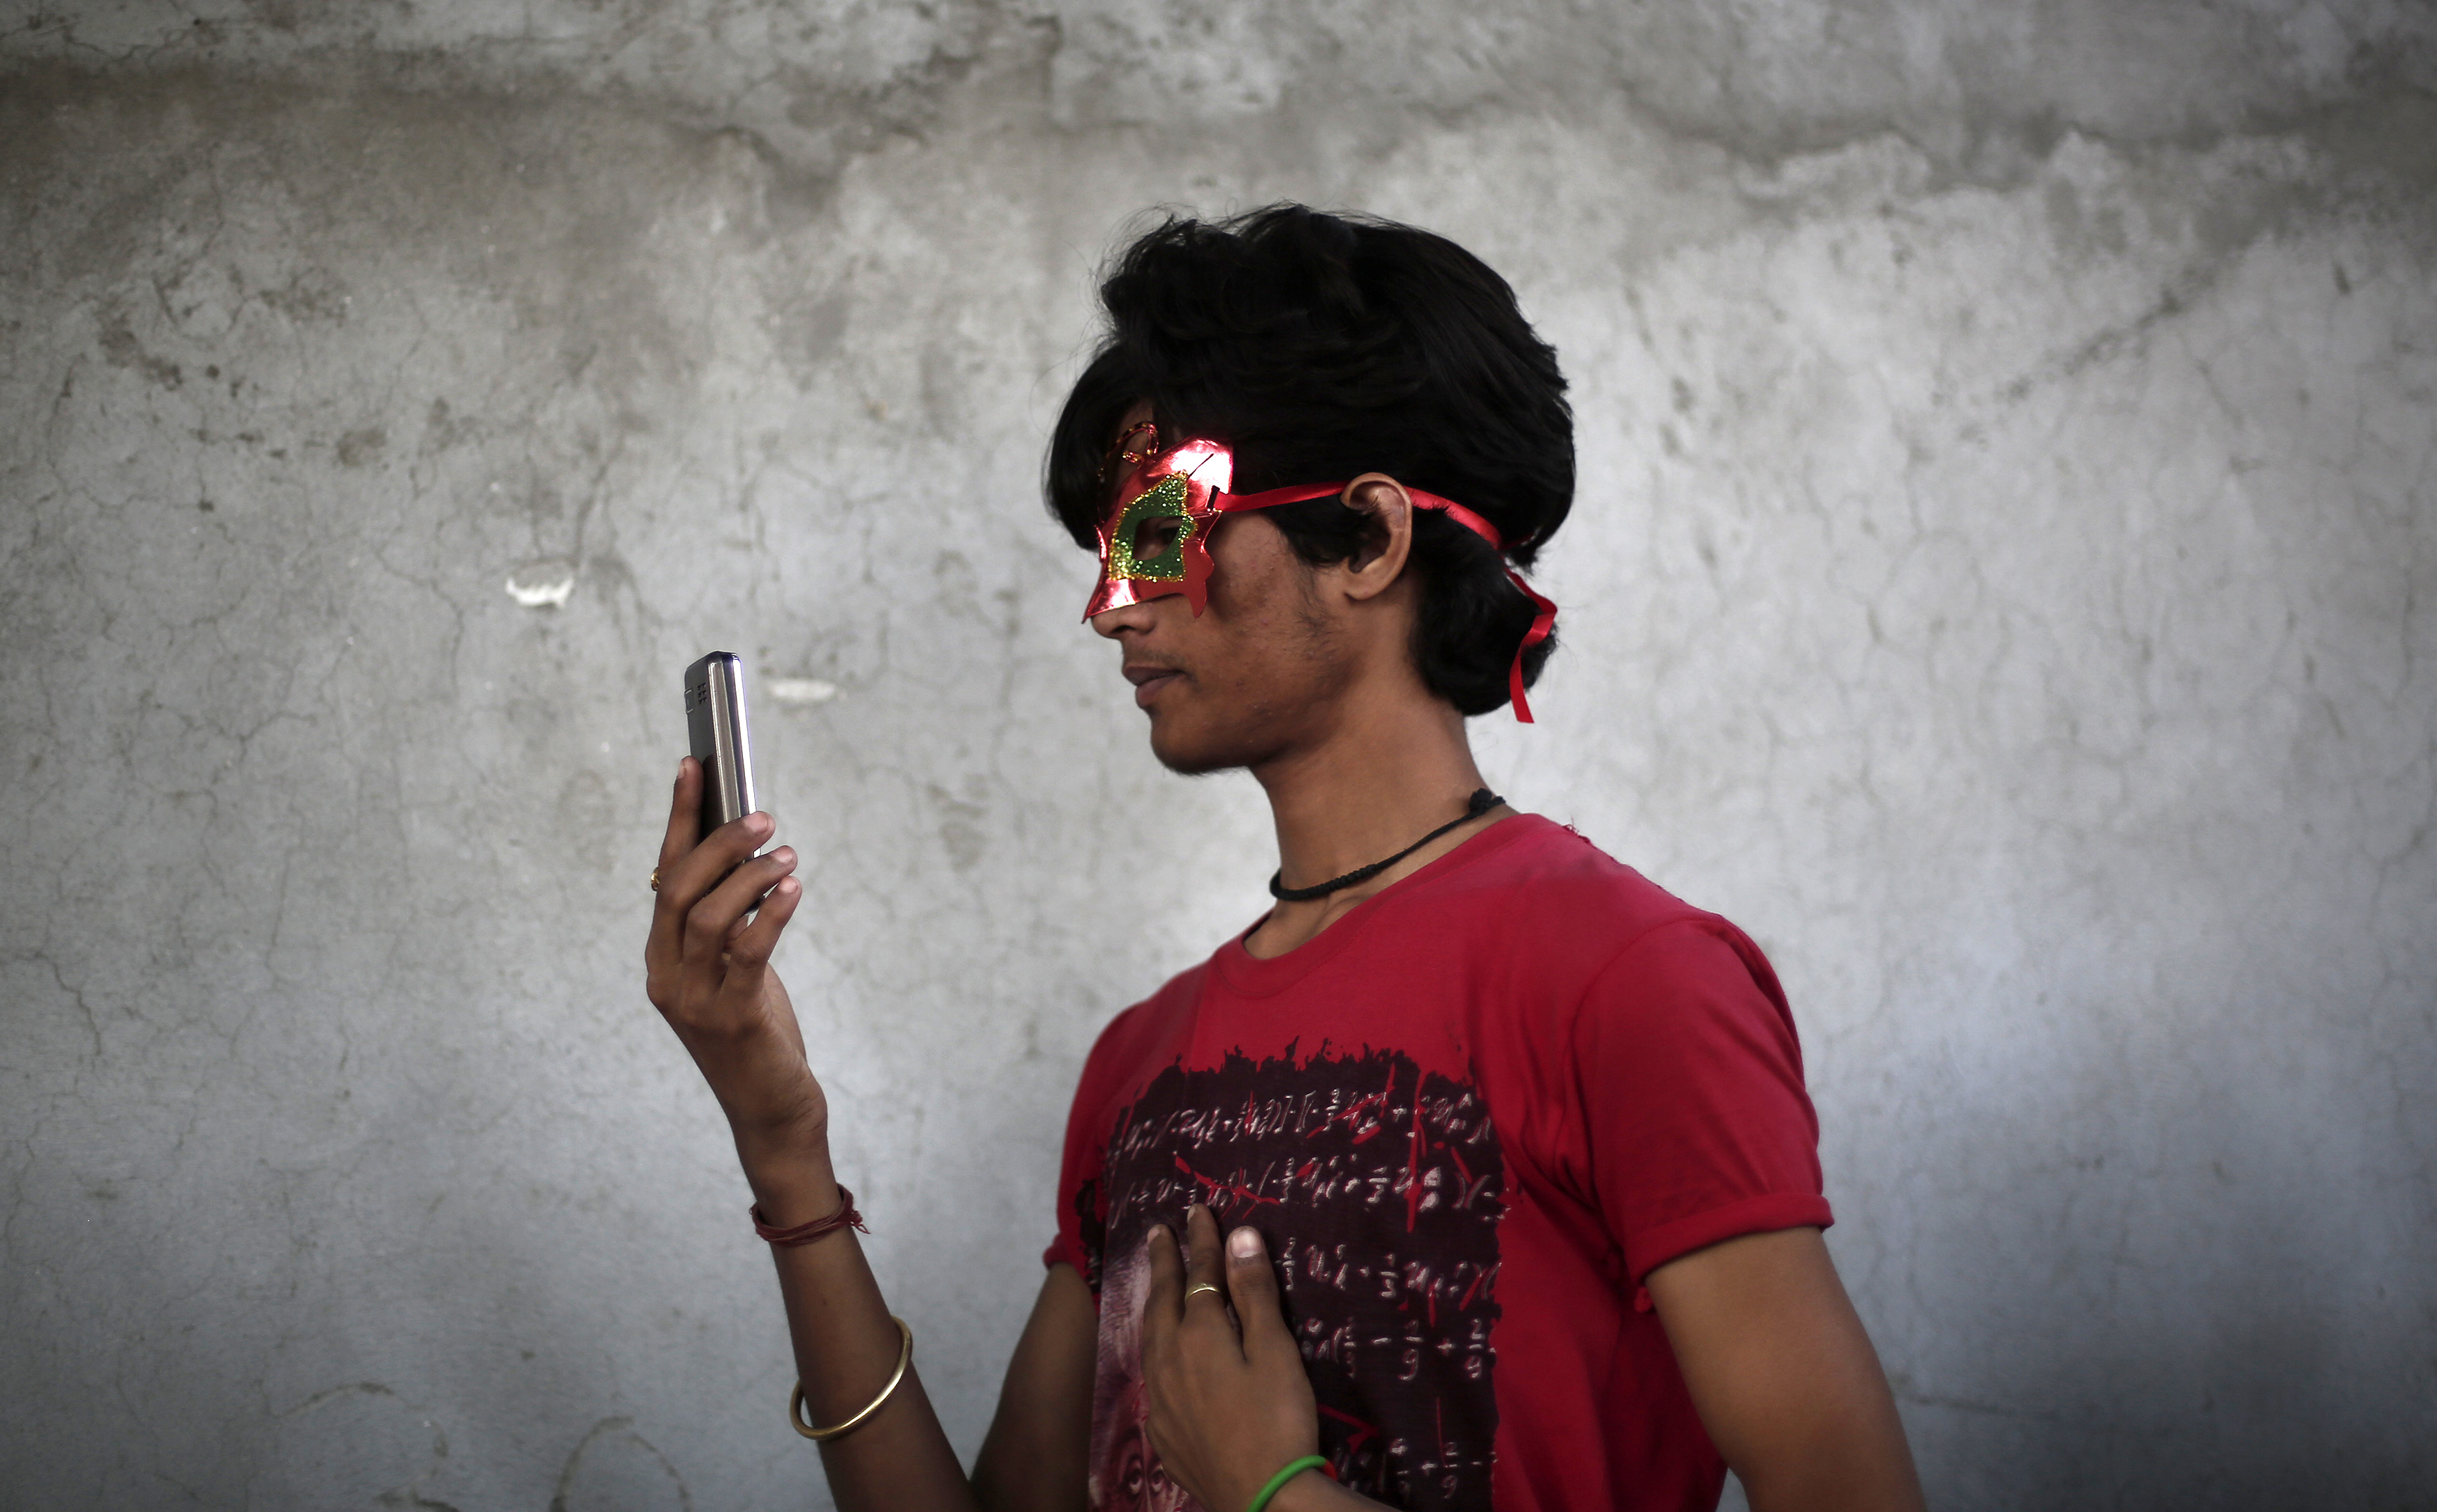 A participant takes a selfie during Delhi Queer Pride Parade in New Delhi